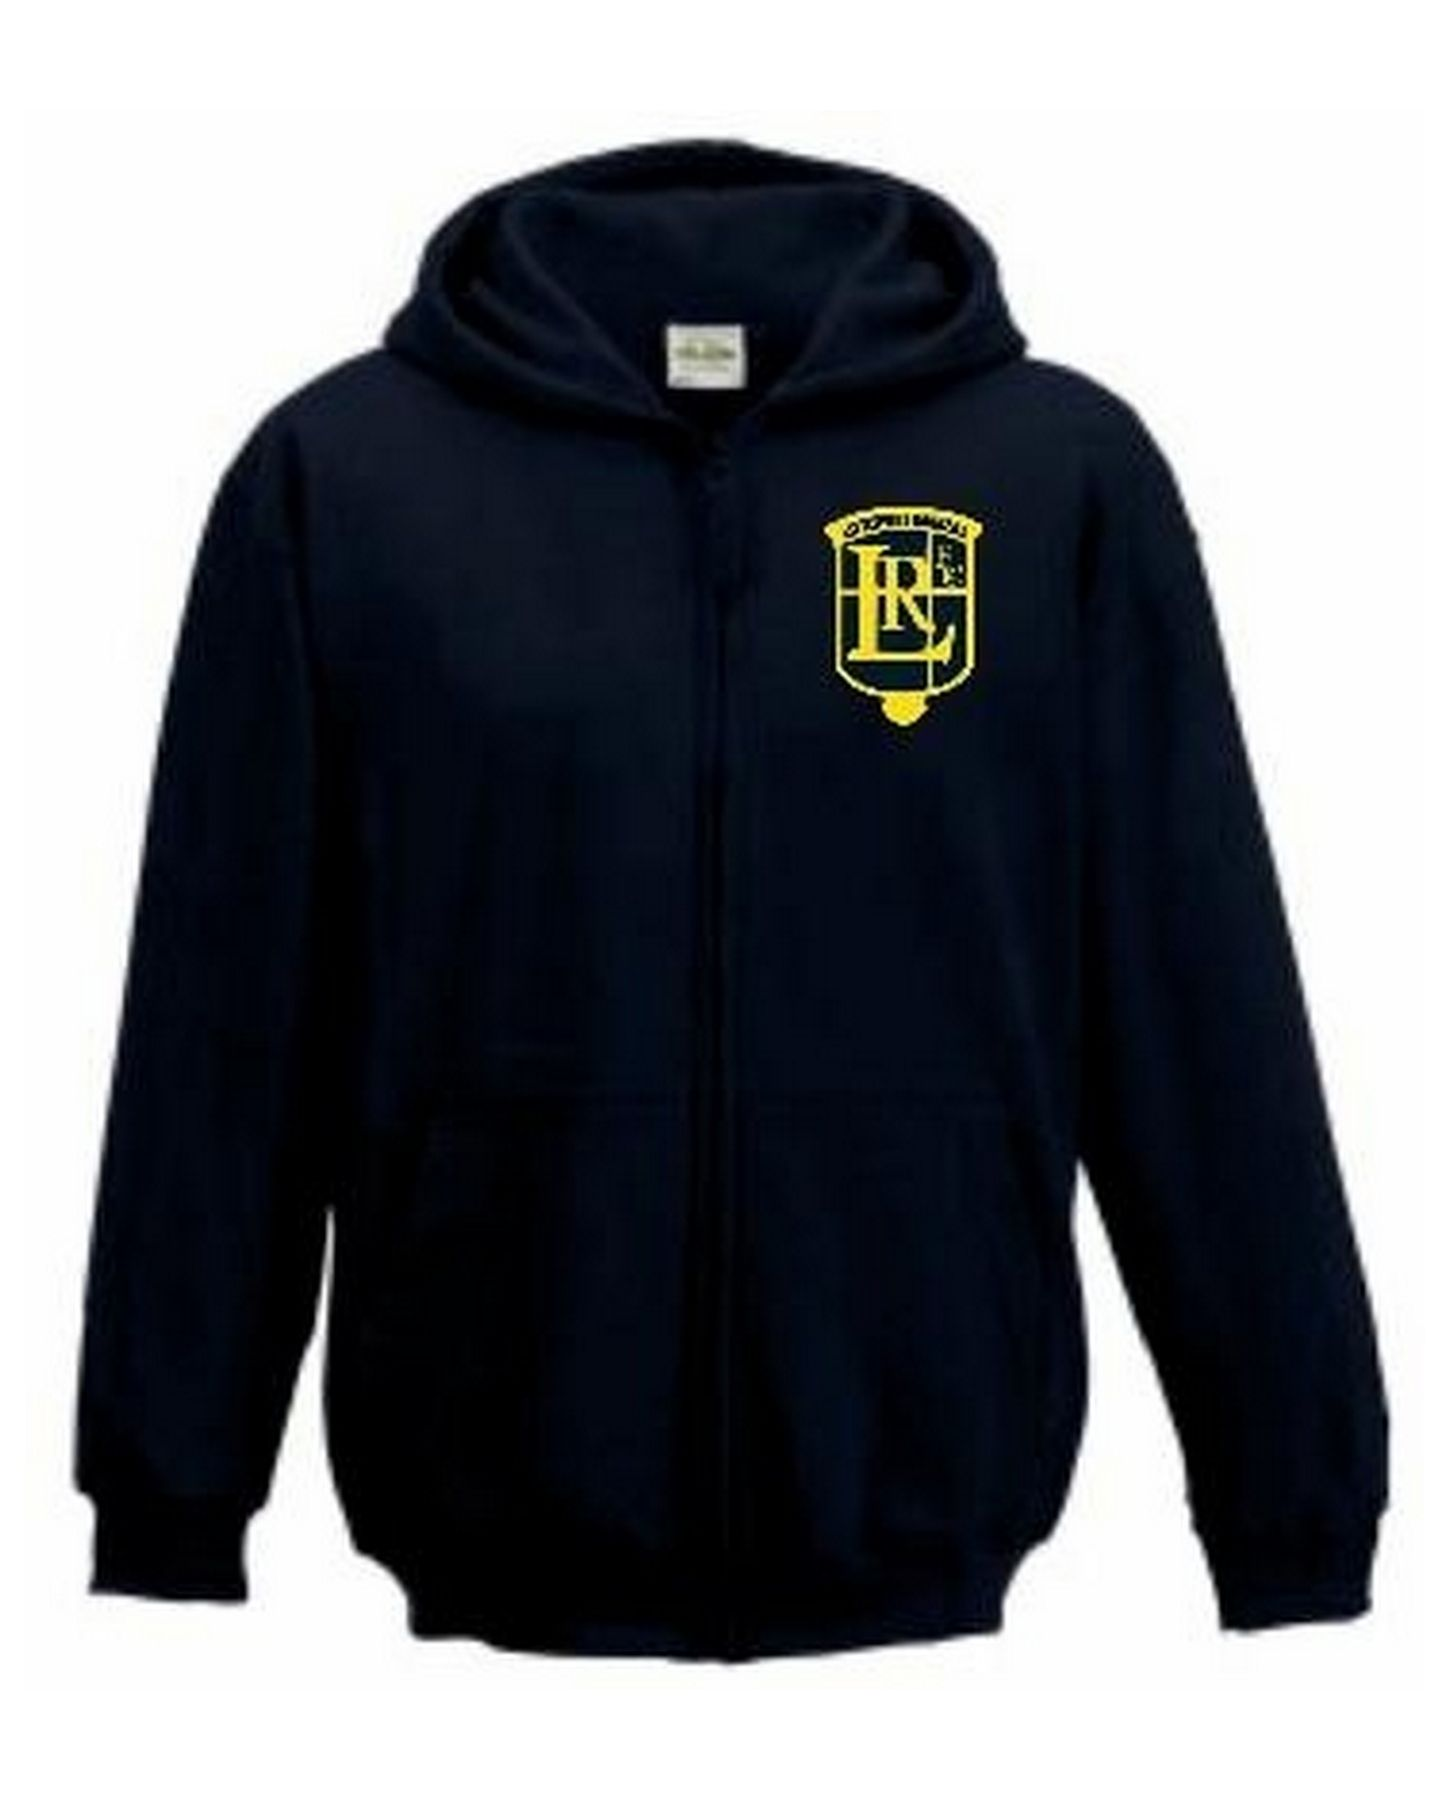 Littleport Rangers – Zip Hoodie Junior